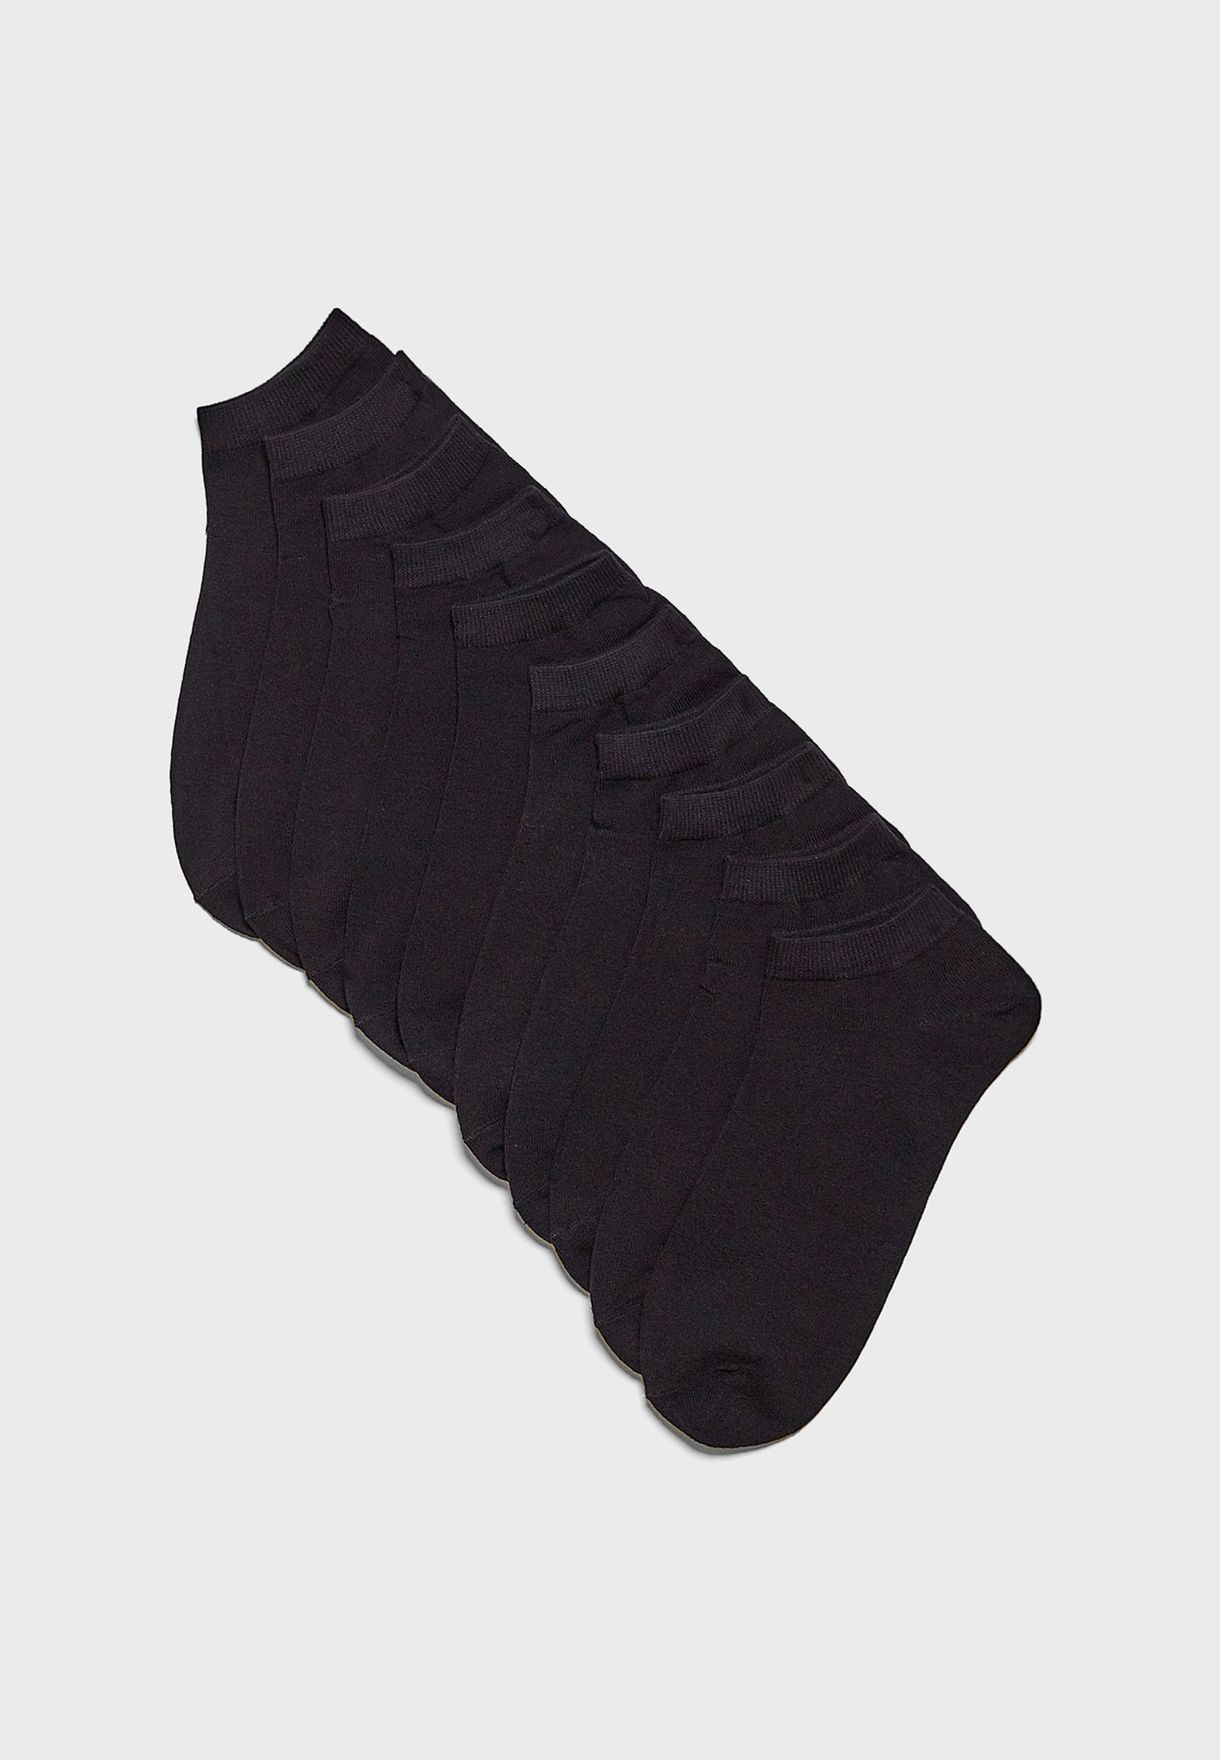 Dongo 10 Pack Ankle Socks